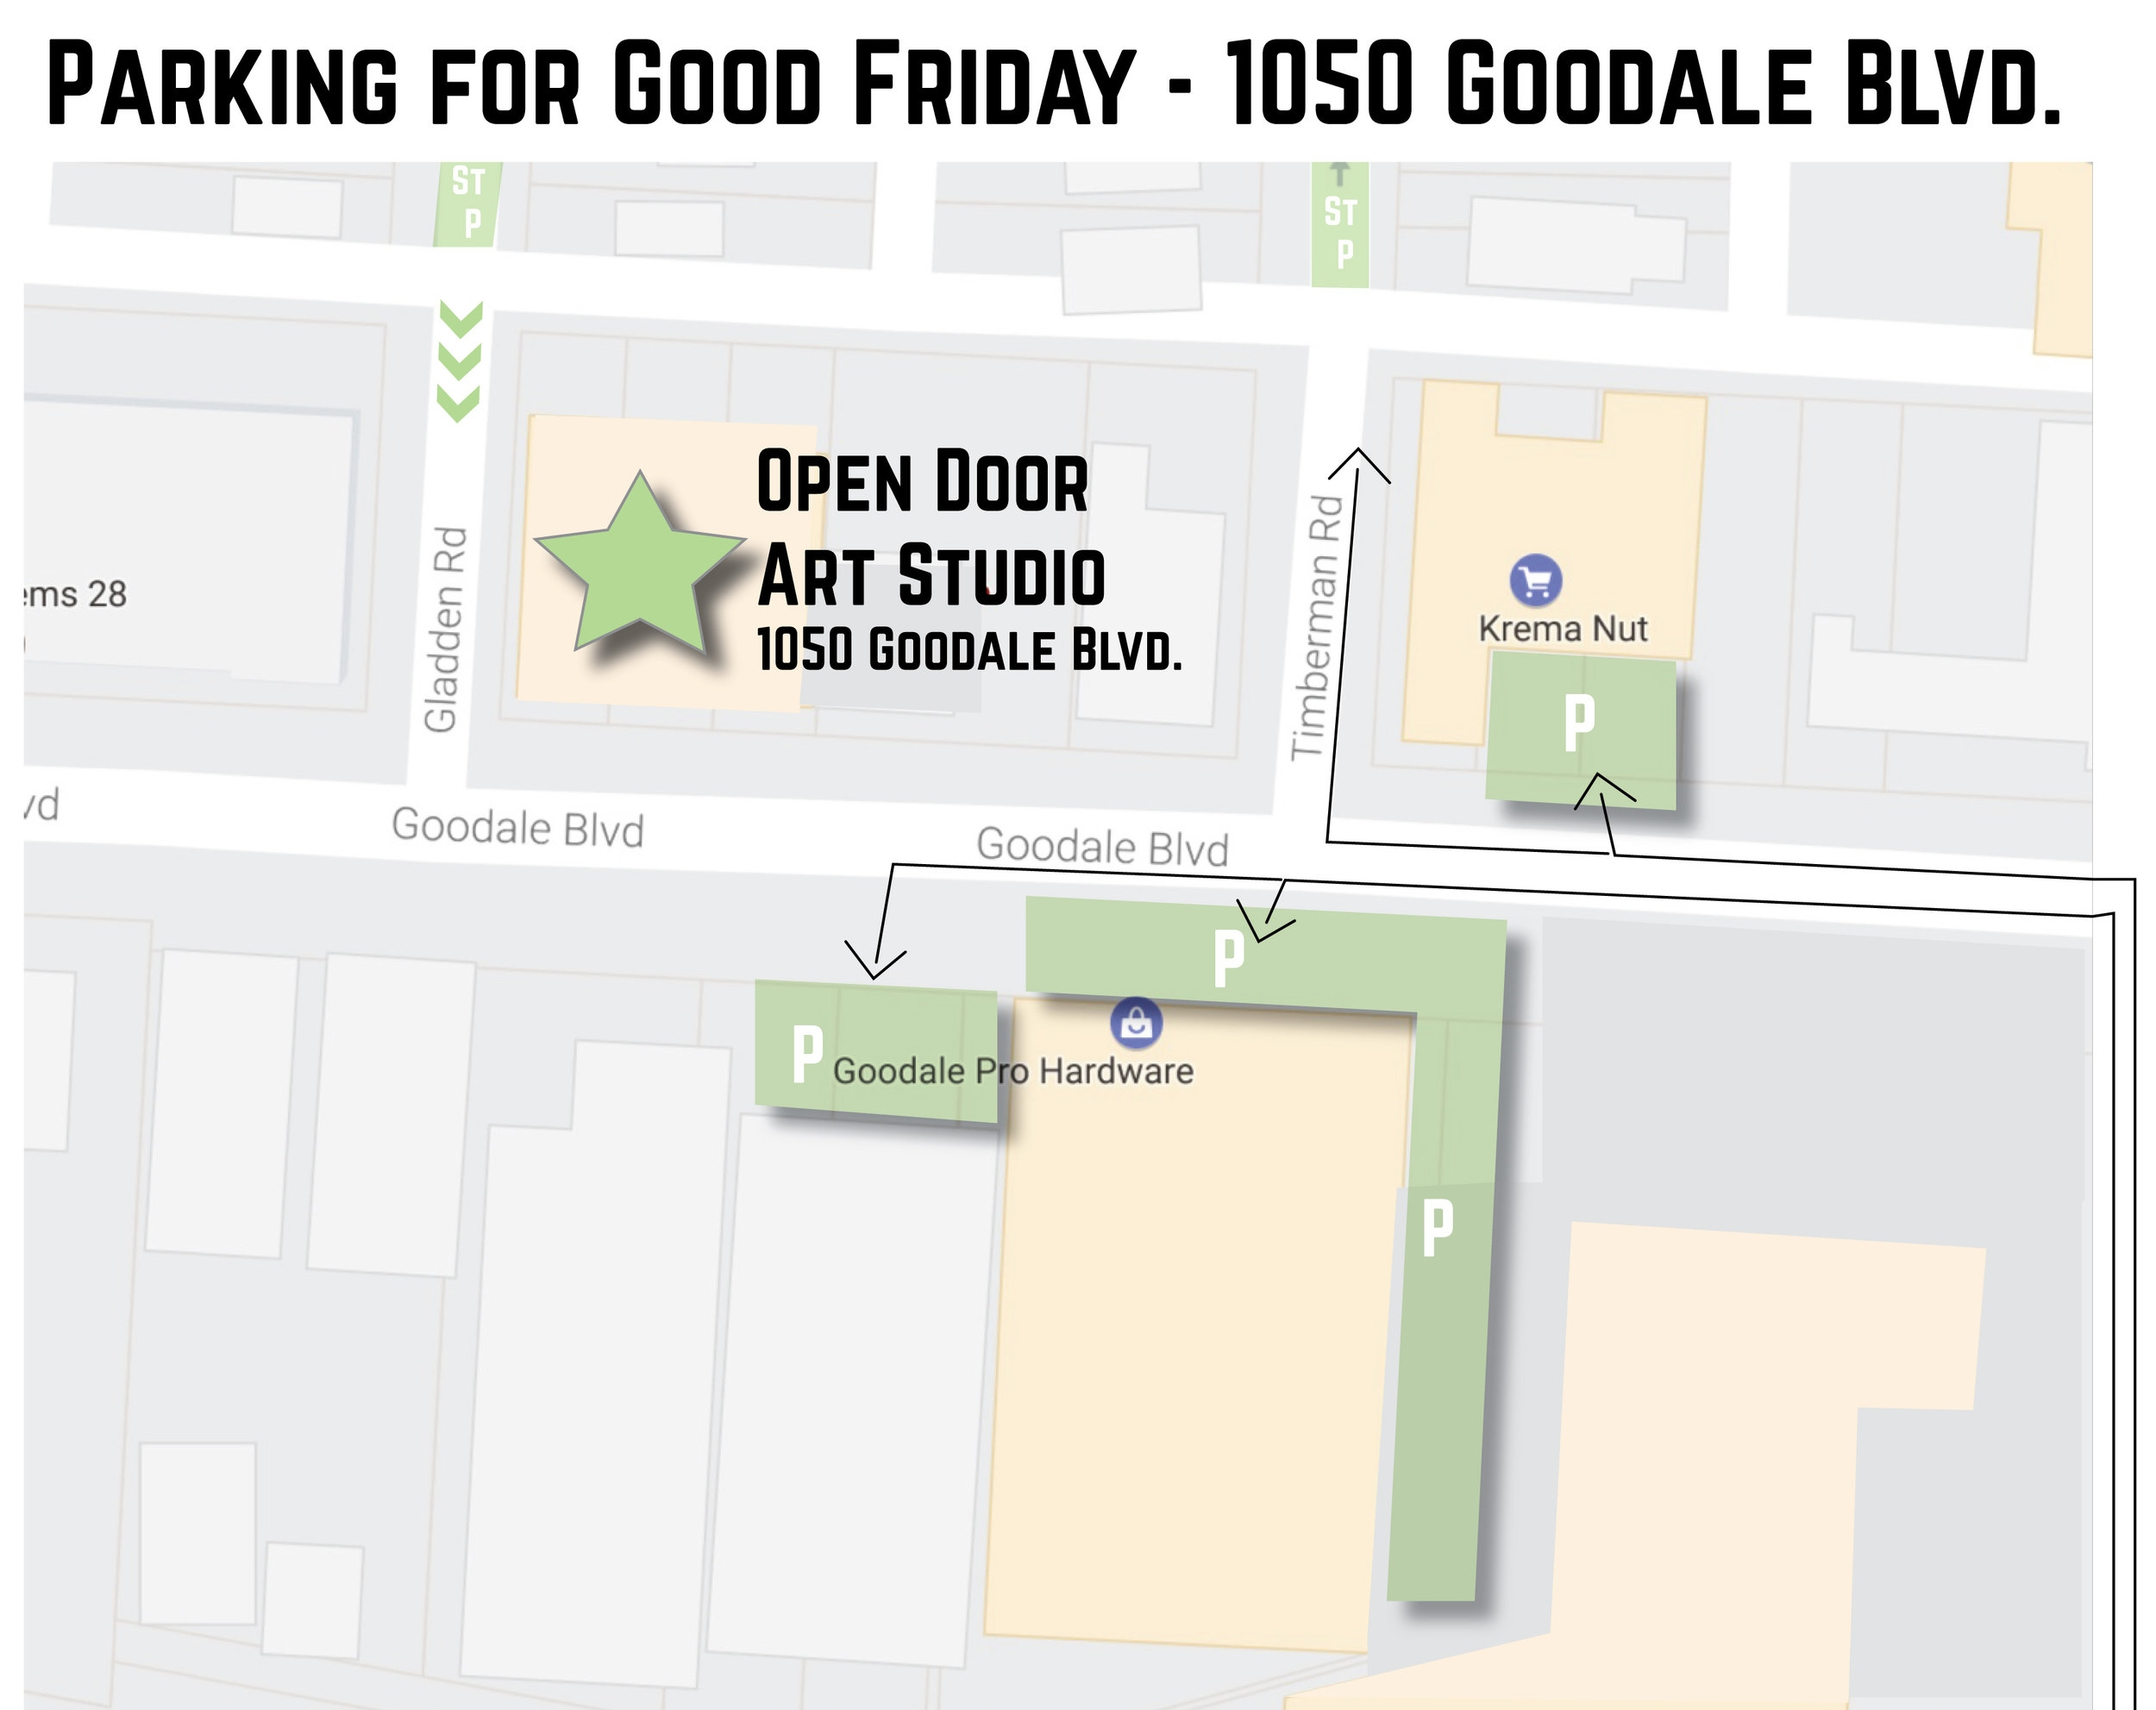 We can use the parking lots at Krema Nut & Goodale Pro Hardware And Street Parking in the neighborhood behind the studio